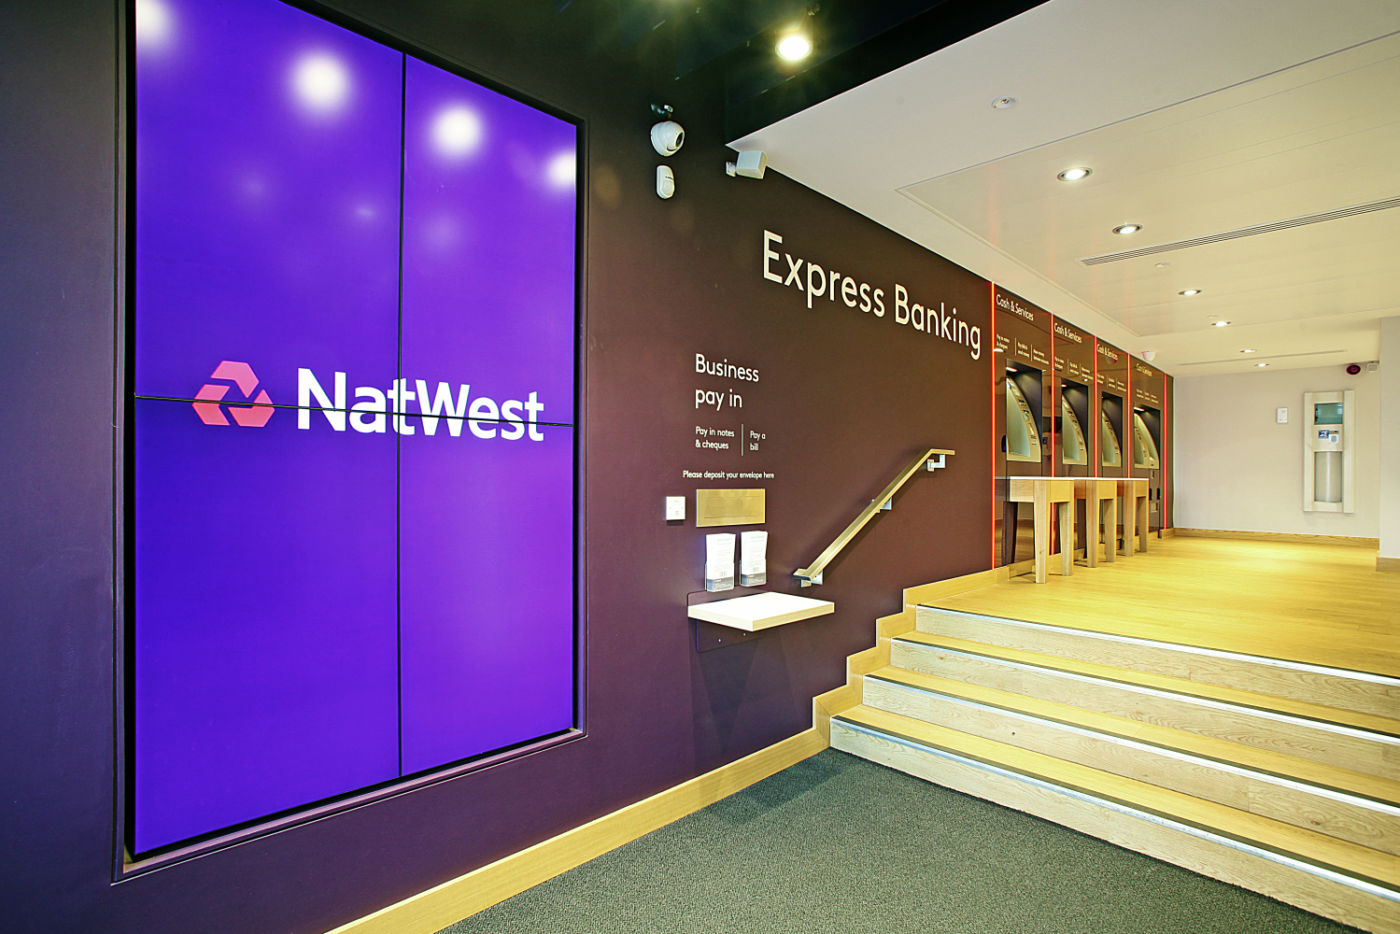 Natwest logo on a screen